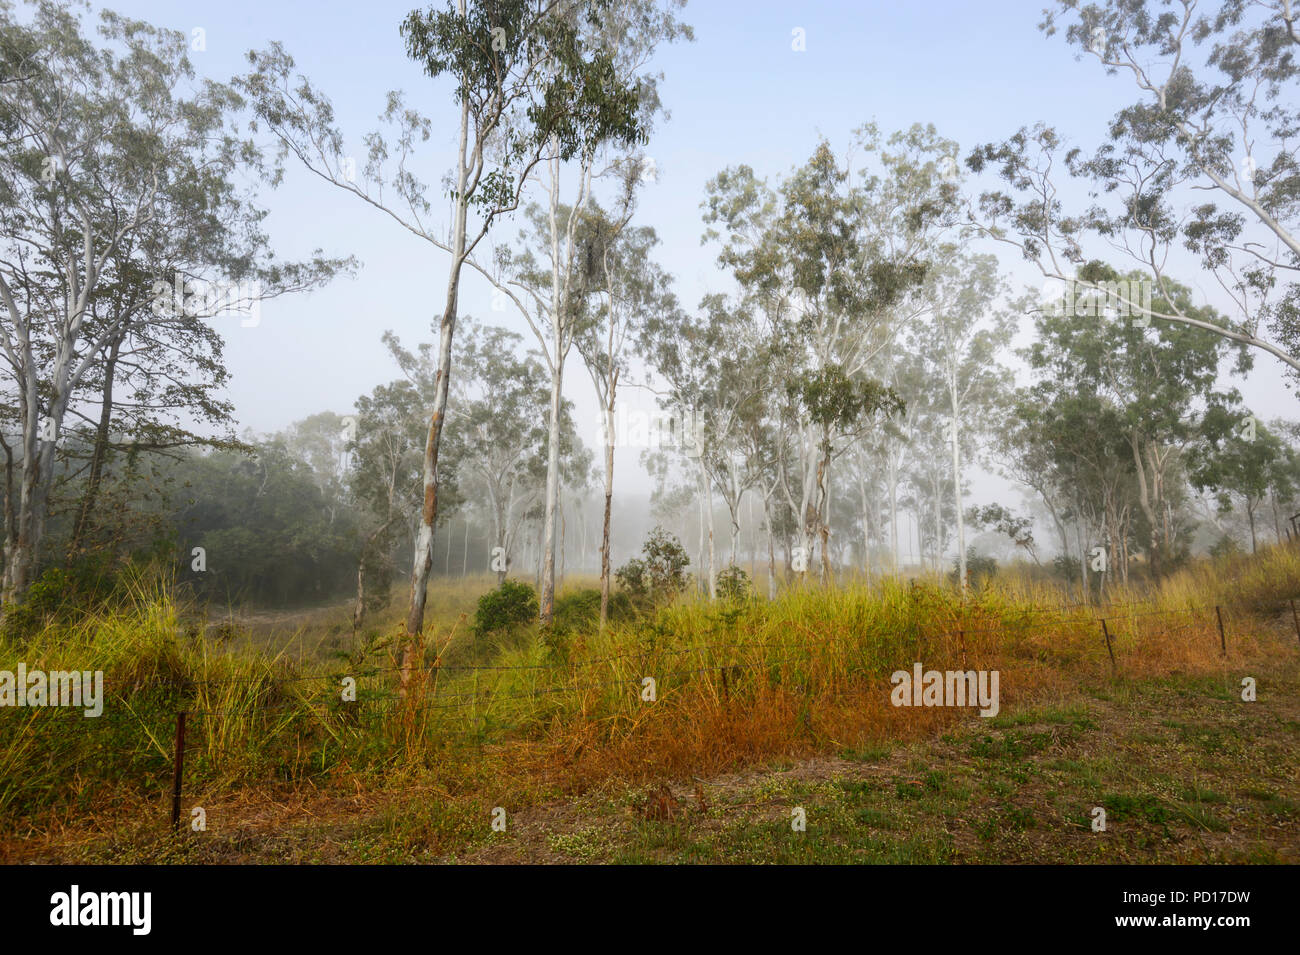 Morning mist in gum trees, Biboorah, Atherton Tablelands, Far North Queensland, FNQ, QLD, Australia - Stock Image